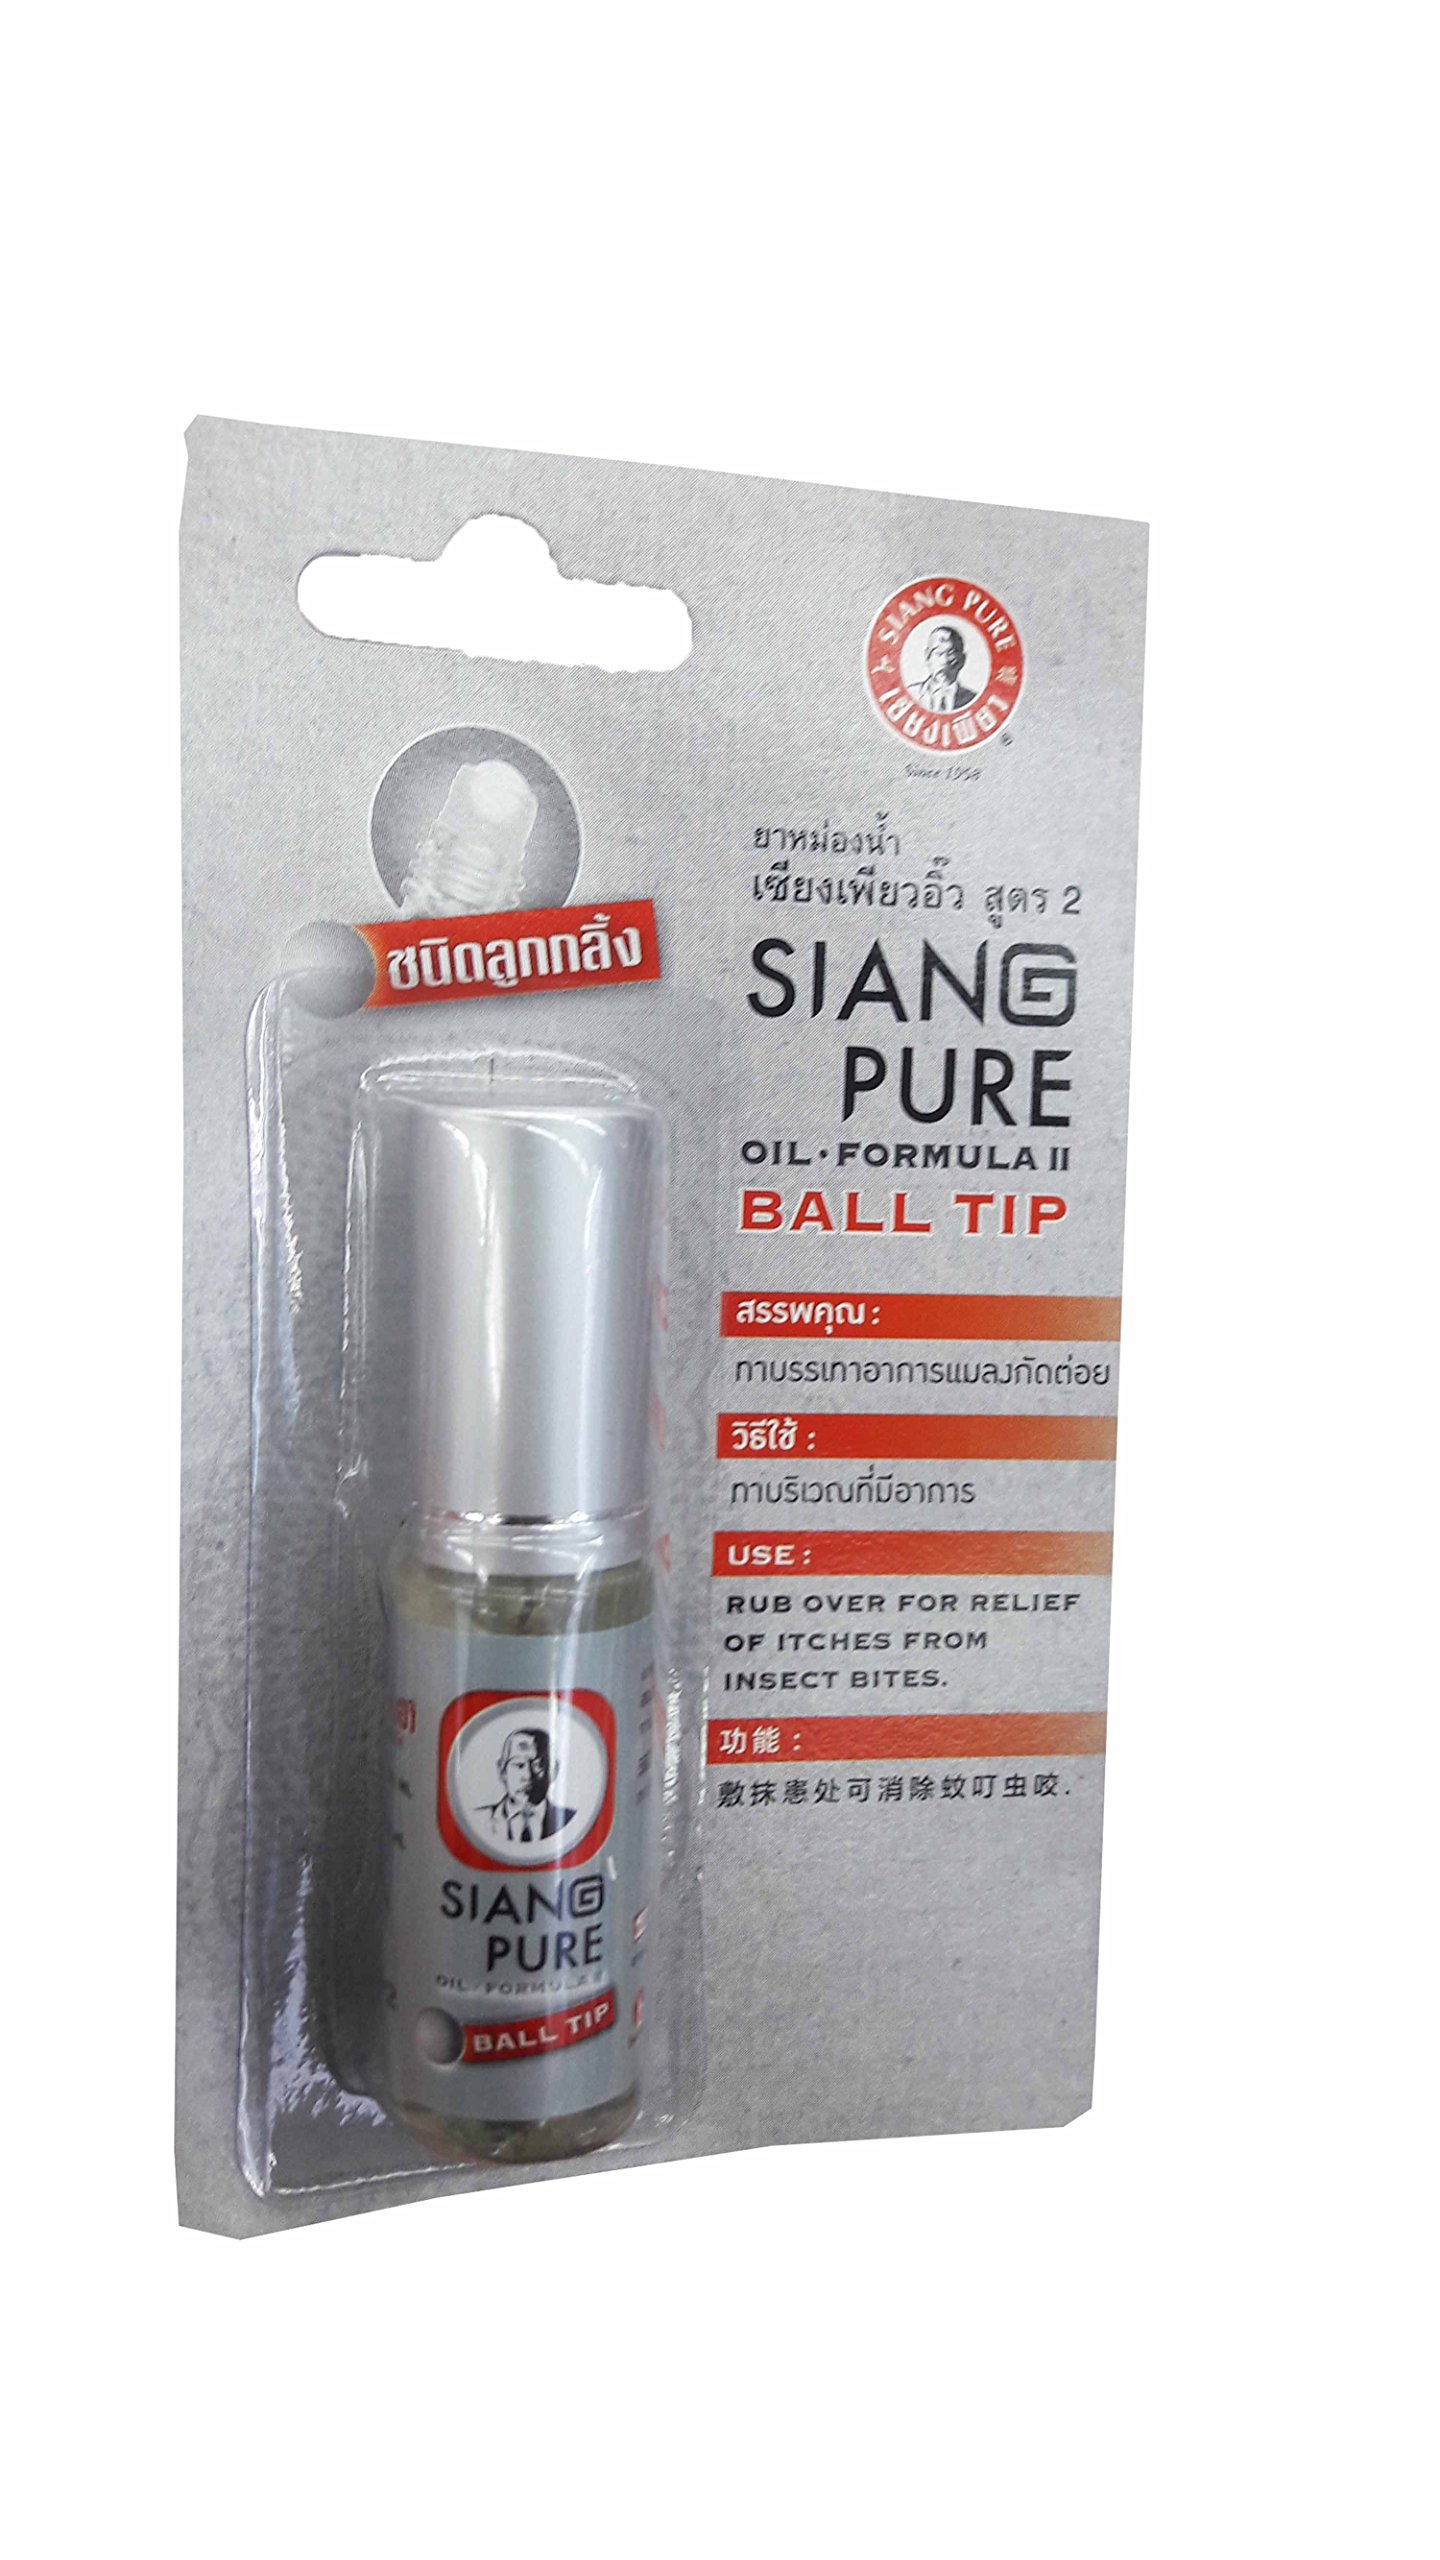 6 Packs of Siang Pure Oil Formular 2, Inhale or Rub Over for Relief of Dizziness, Faint, Muscle Pains, Insect Bites and Itches. (3 Ml/ Pack) (Ball Tip) by Siang Pure